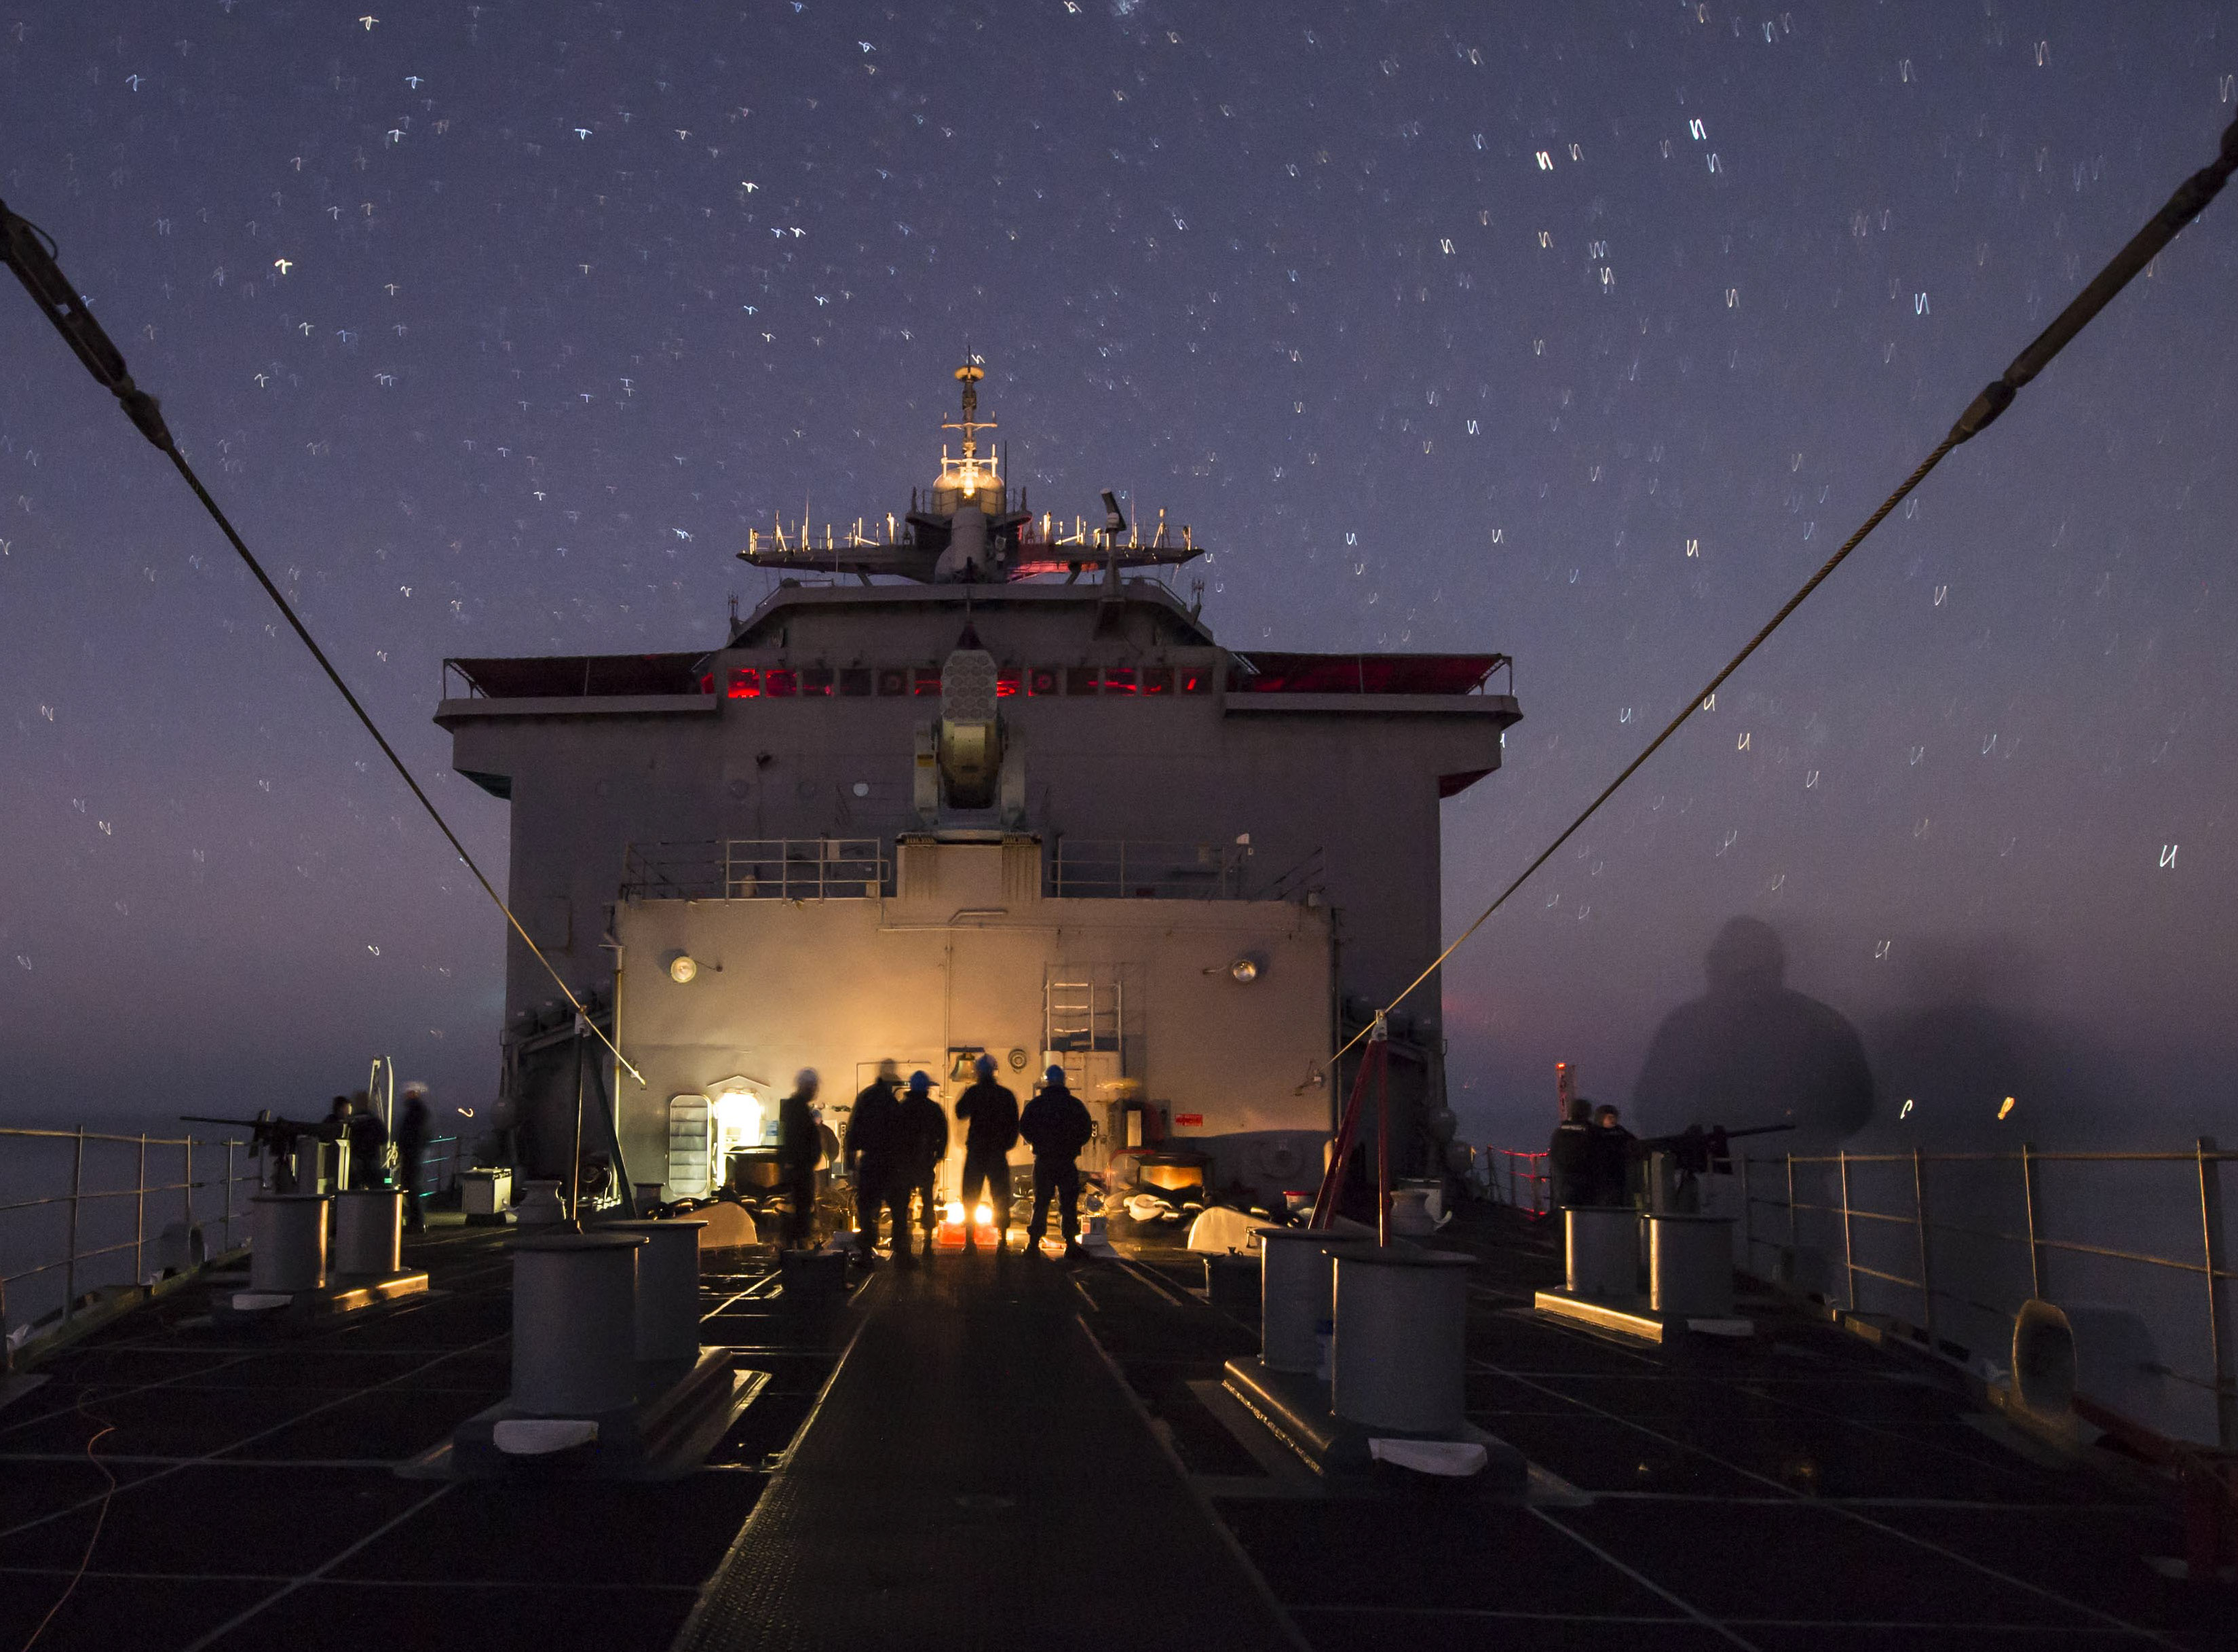 STRAIT OF GIBRALTAR (Dec. 26, 2014) Sailors aboard the Whidbey Island-class amphibious dock landing ship USS Fort McHenry (LSD 43) prepare the ship's forecastle for an eastbound transit of the Strait of Gibraltar. Fort McHenry, part of the Iwo Jima Amphibious Ready Group is conducting naval operations in the U.S. 6th Fleet area of responsibility in support of U.S. national security interests in Europe. (U.S. Navy Photo by Mass Communication Specialist 3rd Class Adam Austin/Released)